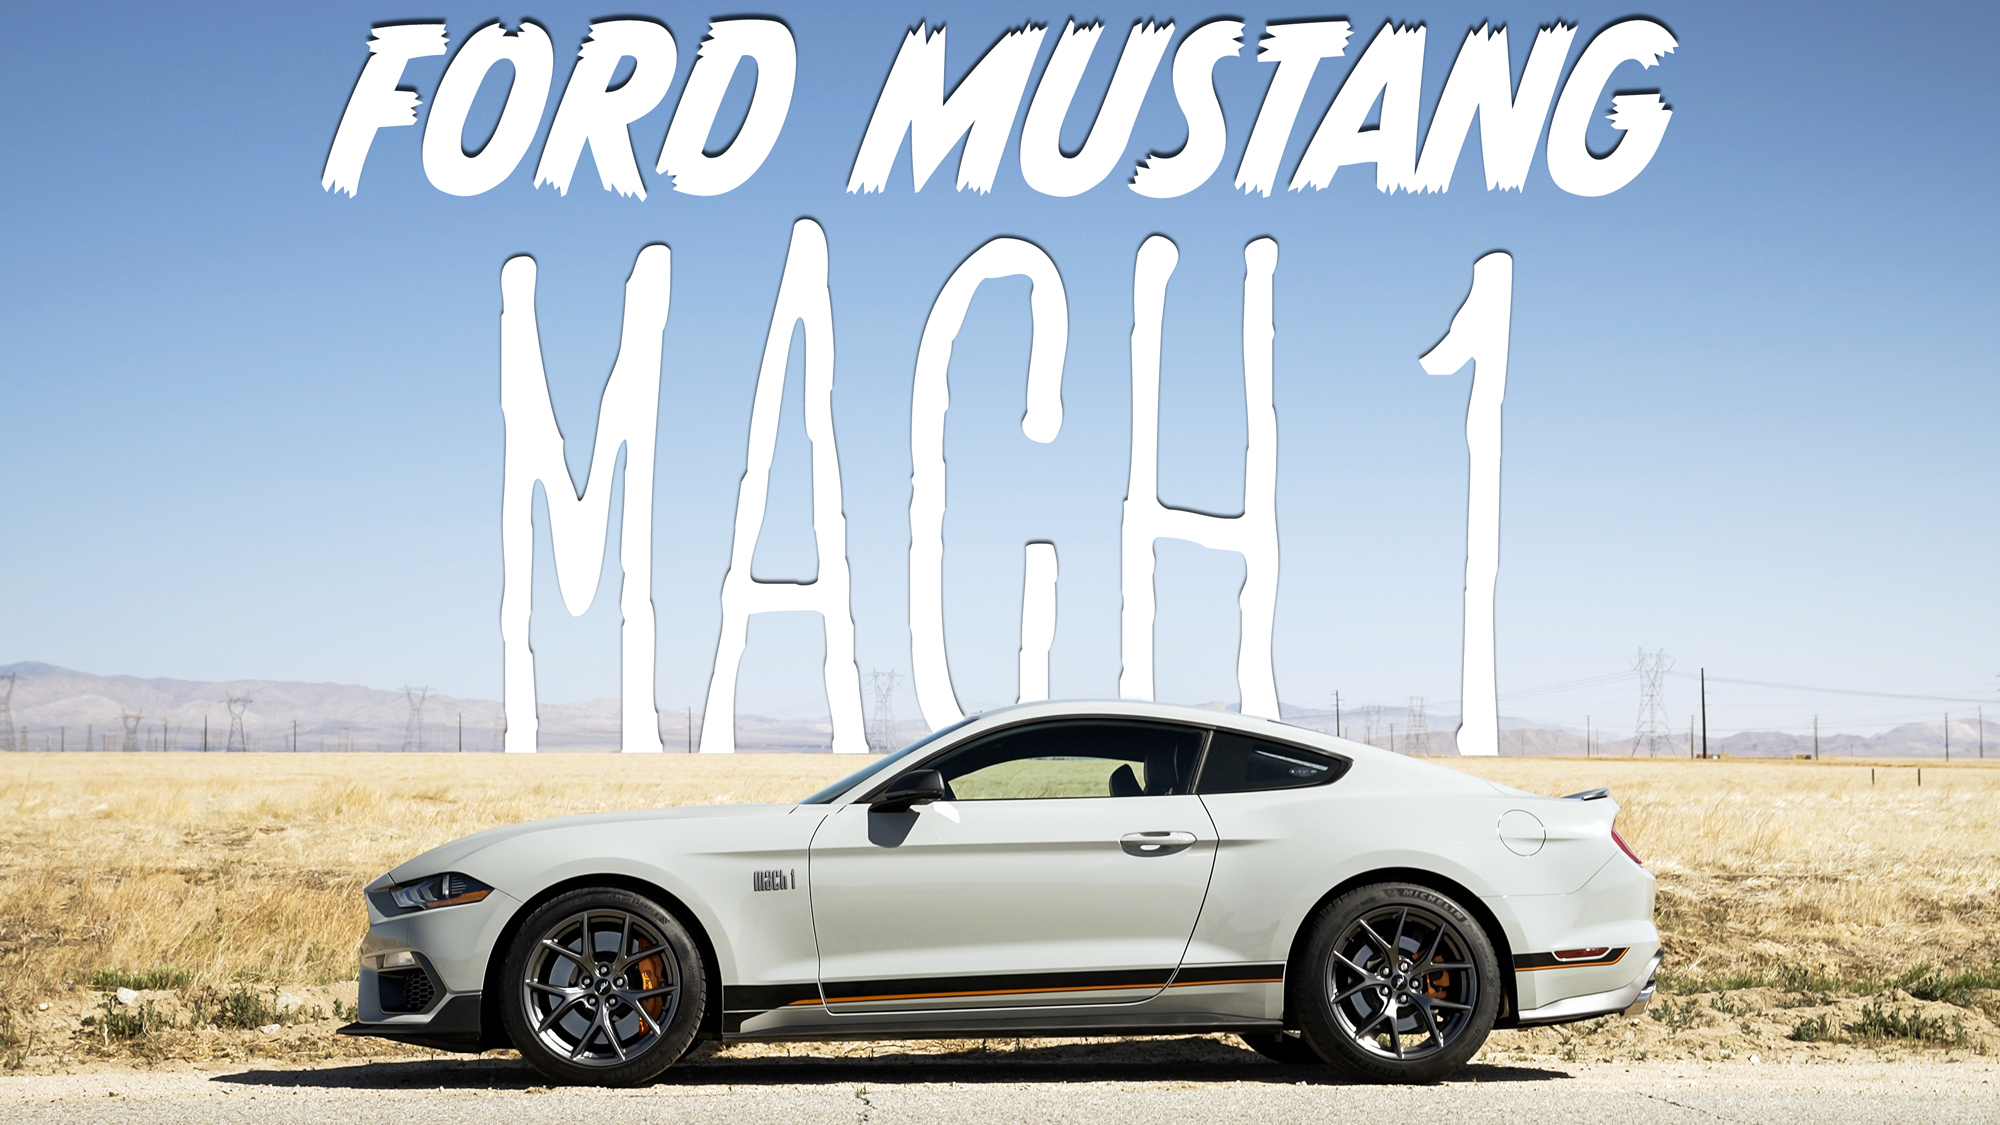 2021 Ford Mustang Mach 1 on the road